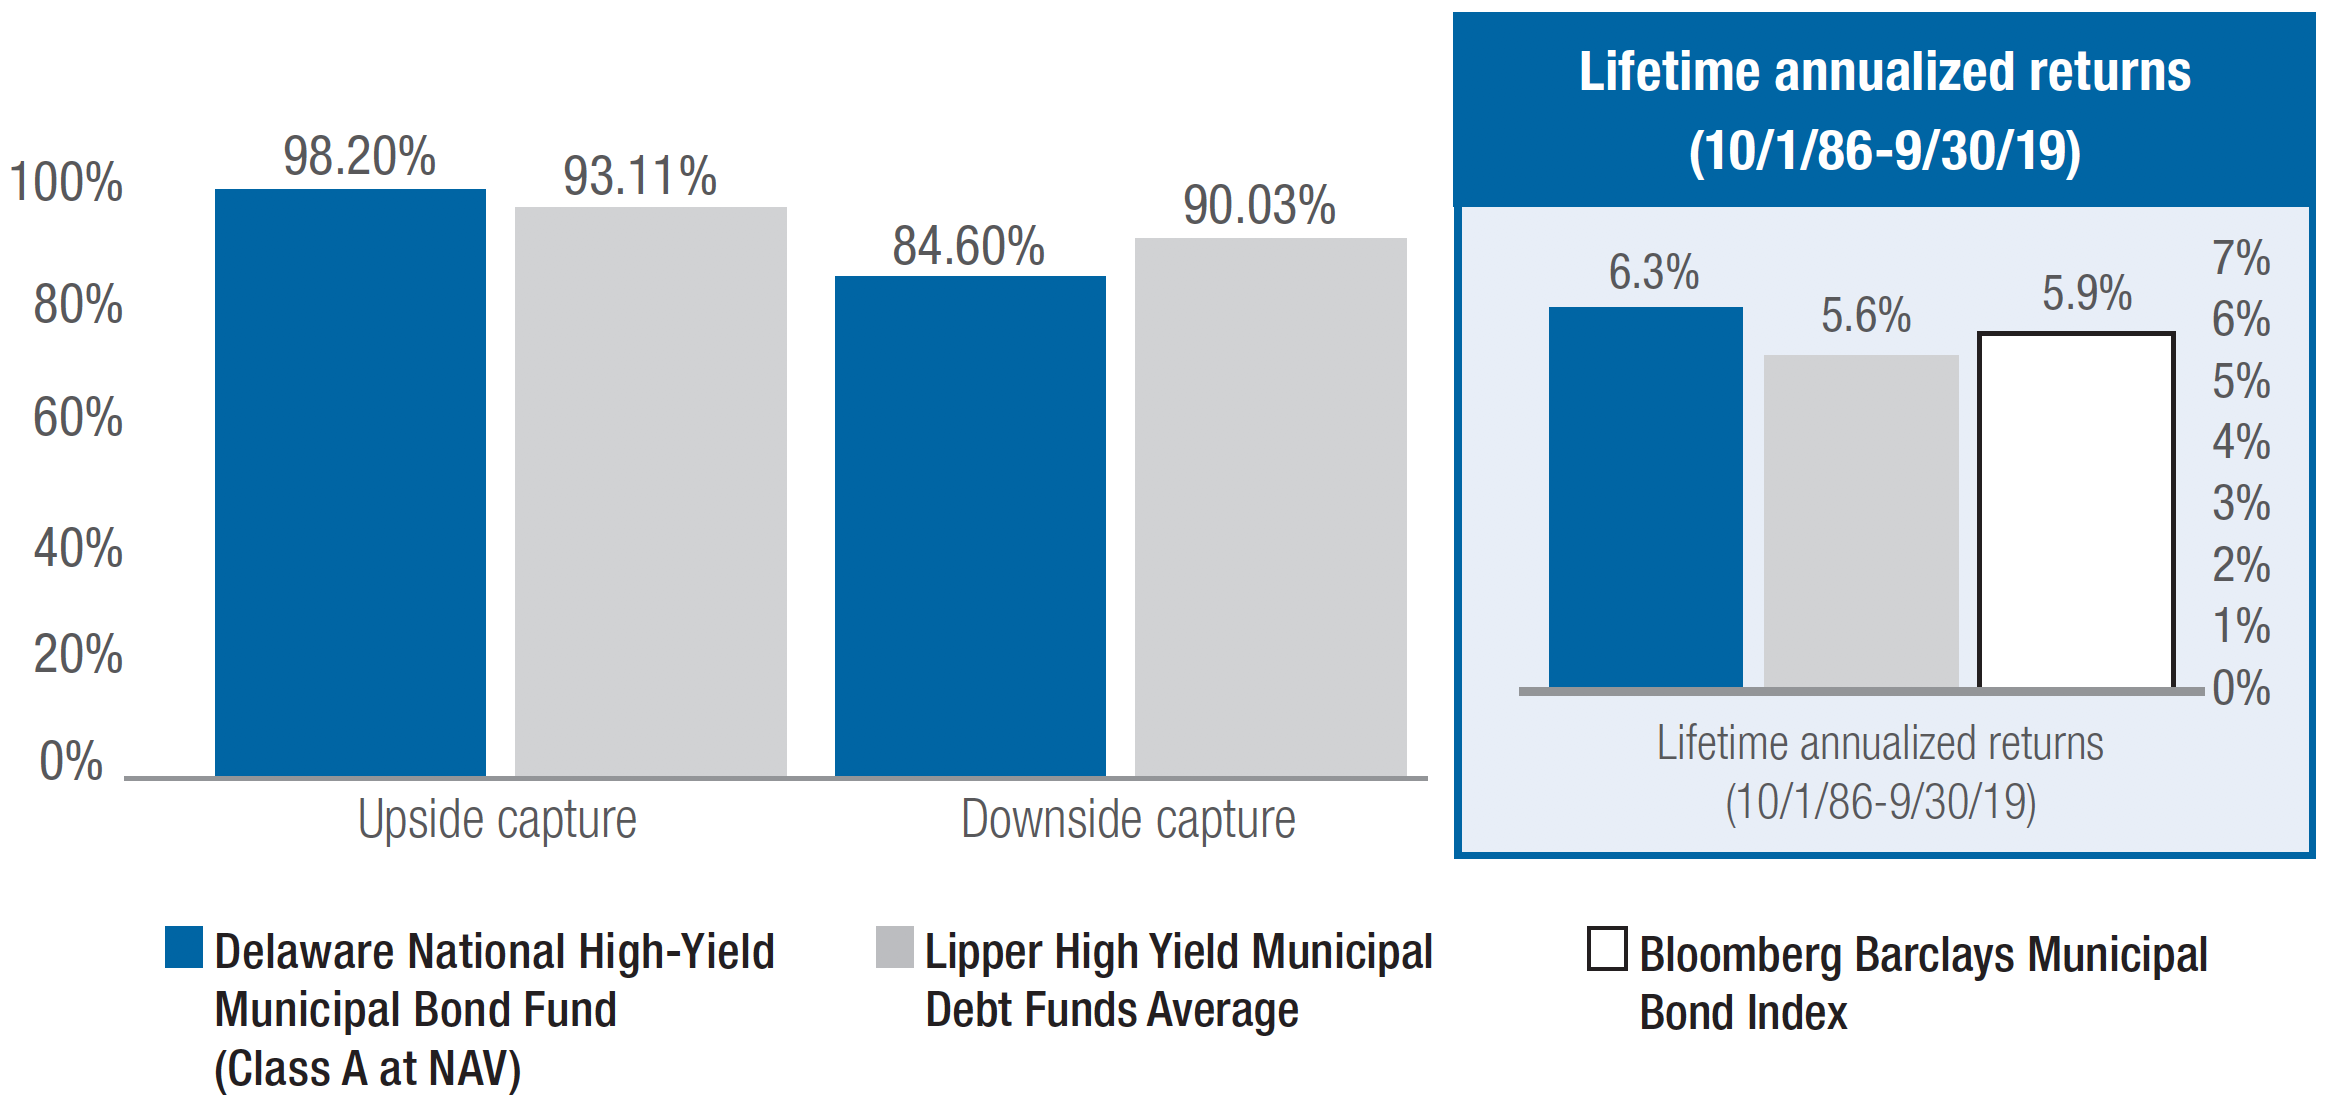 Delaware National High-Yield Municipal Bond Fund